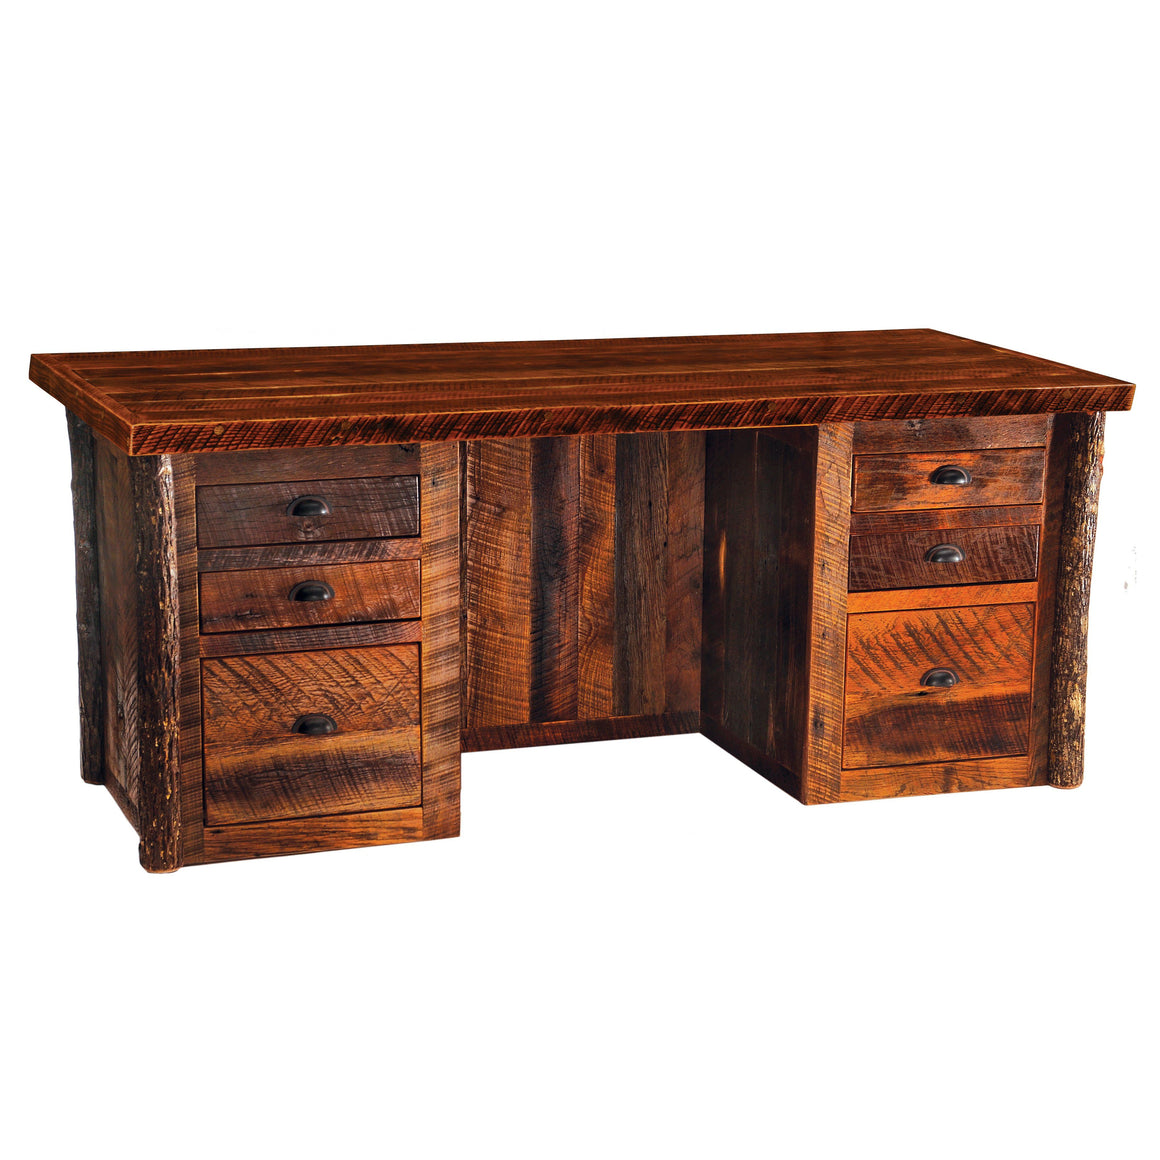 Barnwood Executive Desk - Barnwood Legs - Artisan Top and Antique Oak Top-Rustic Deco Incorporated